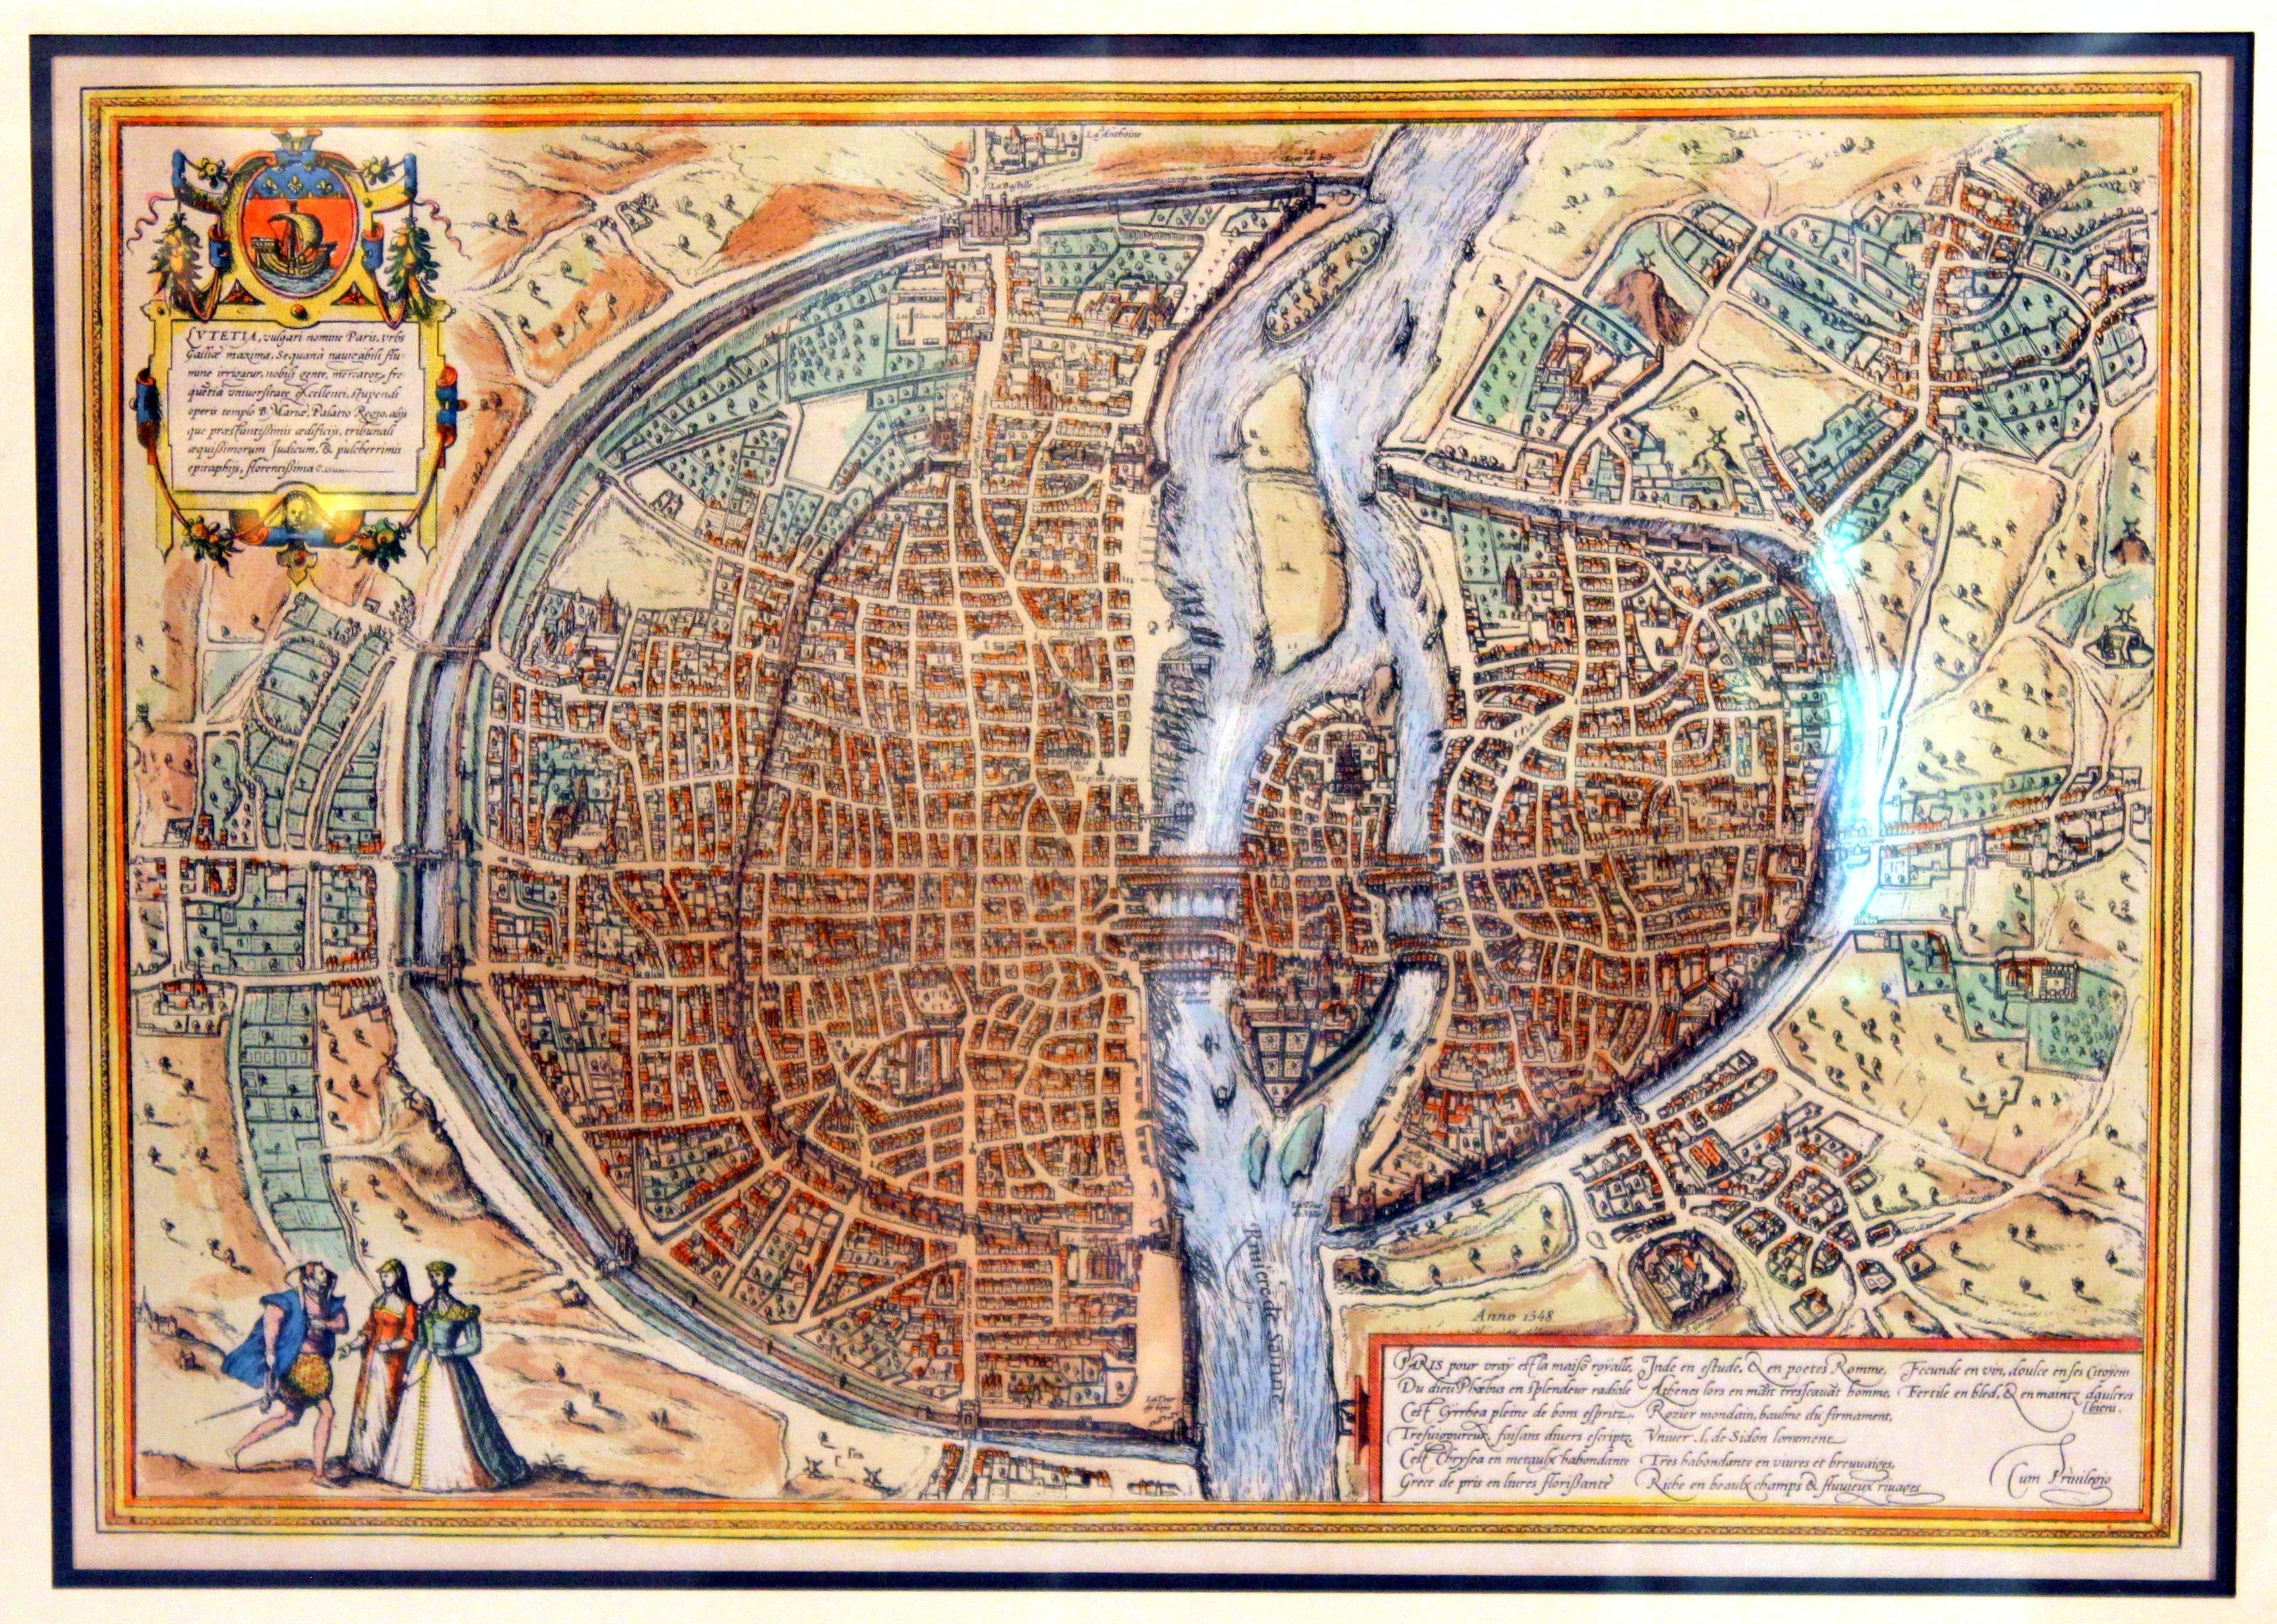 Old Engraving Map of Paris French Munster 16th Century Walled City on